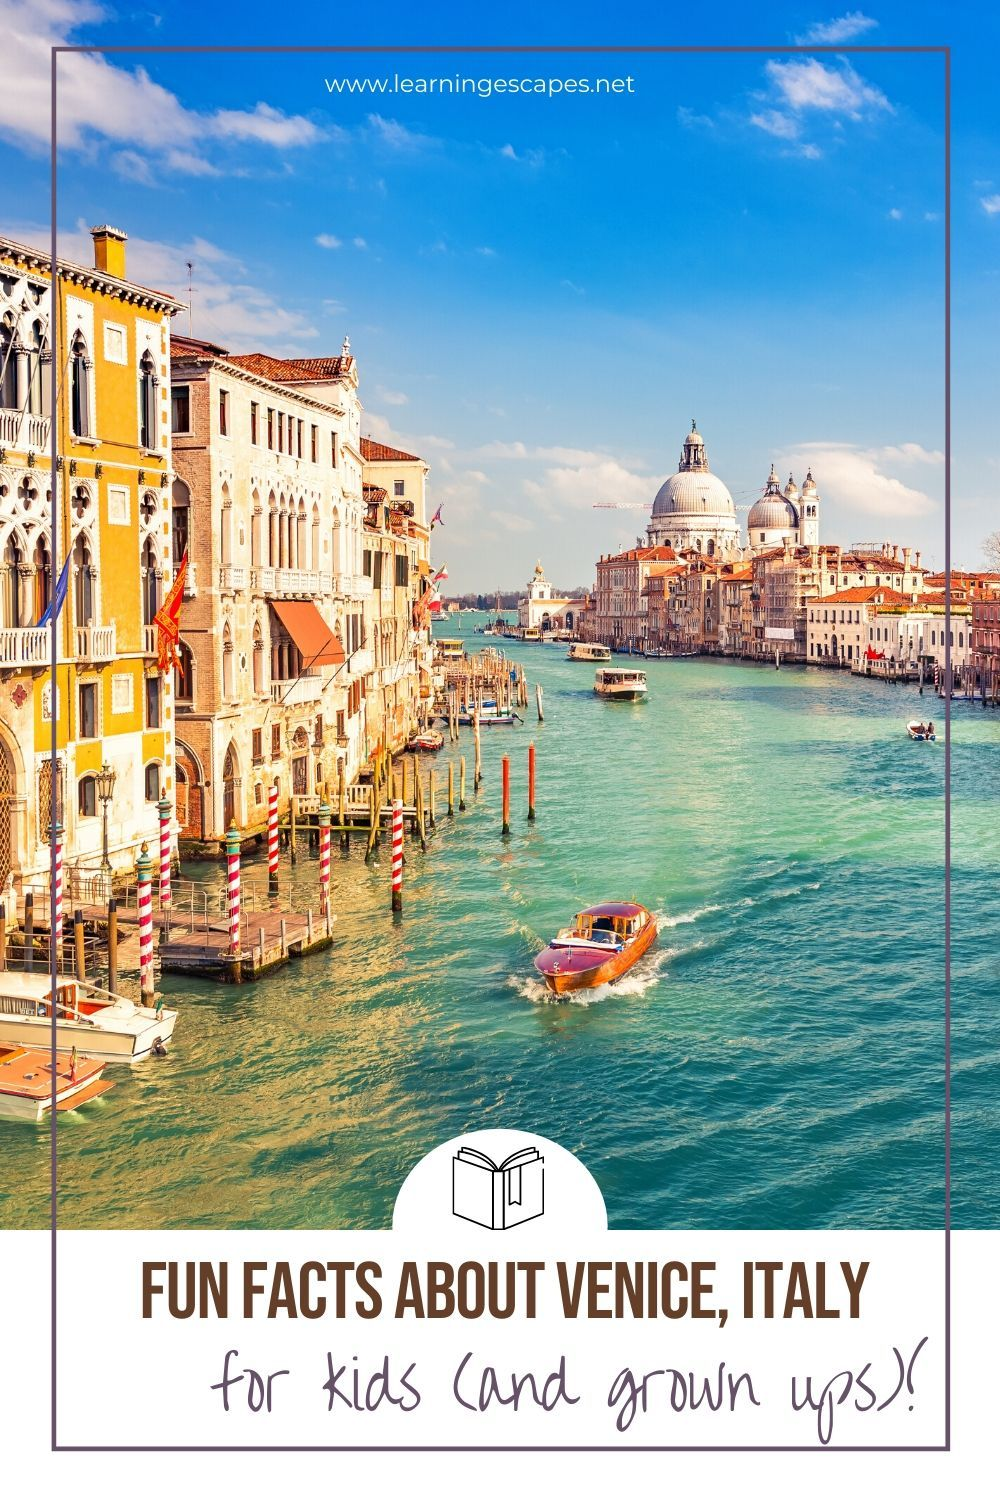 Fun facts about Venice for kids (and curious adults ...